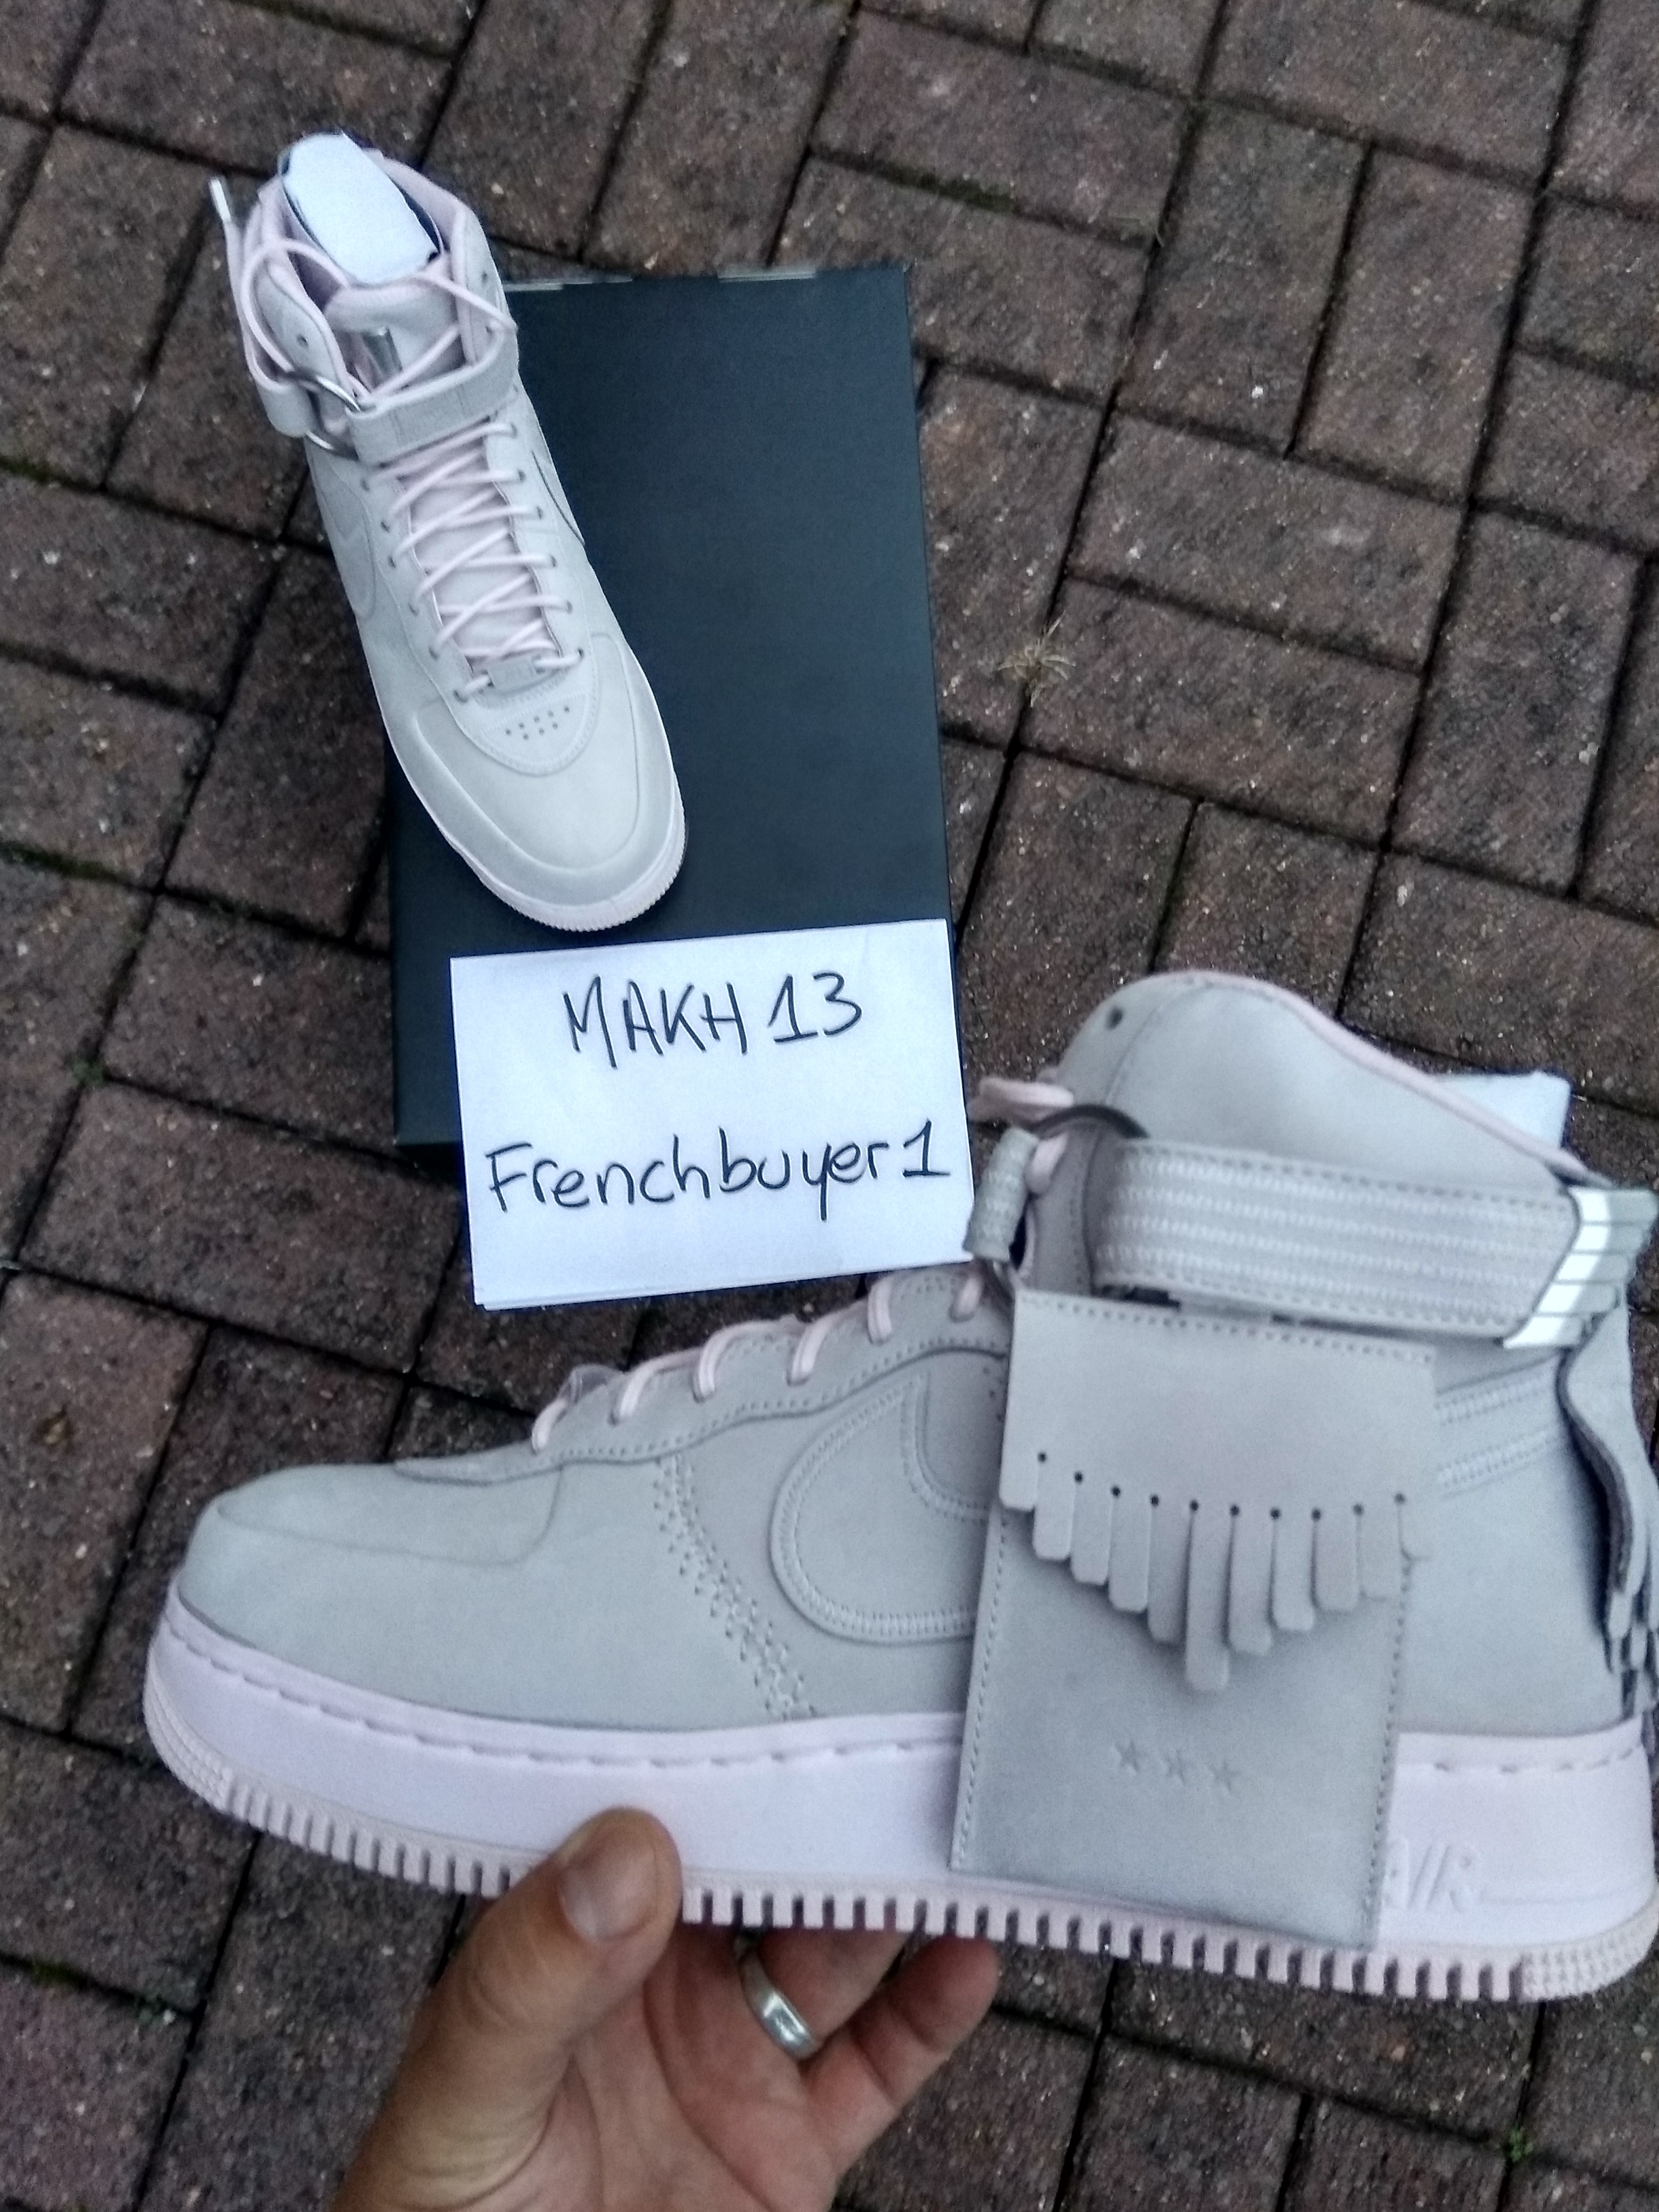 Nike air force 1 High SL lux Easter pack 919473 600 DS sz.9.5US